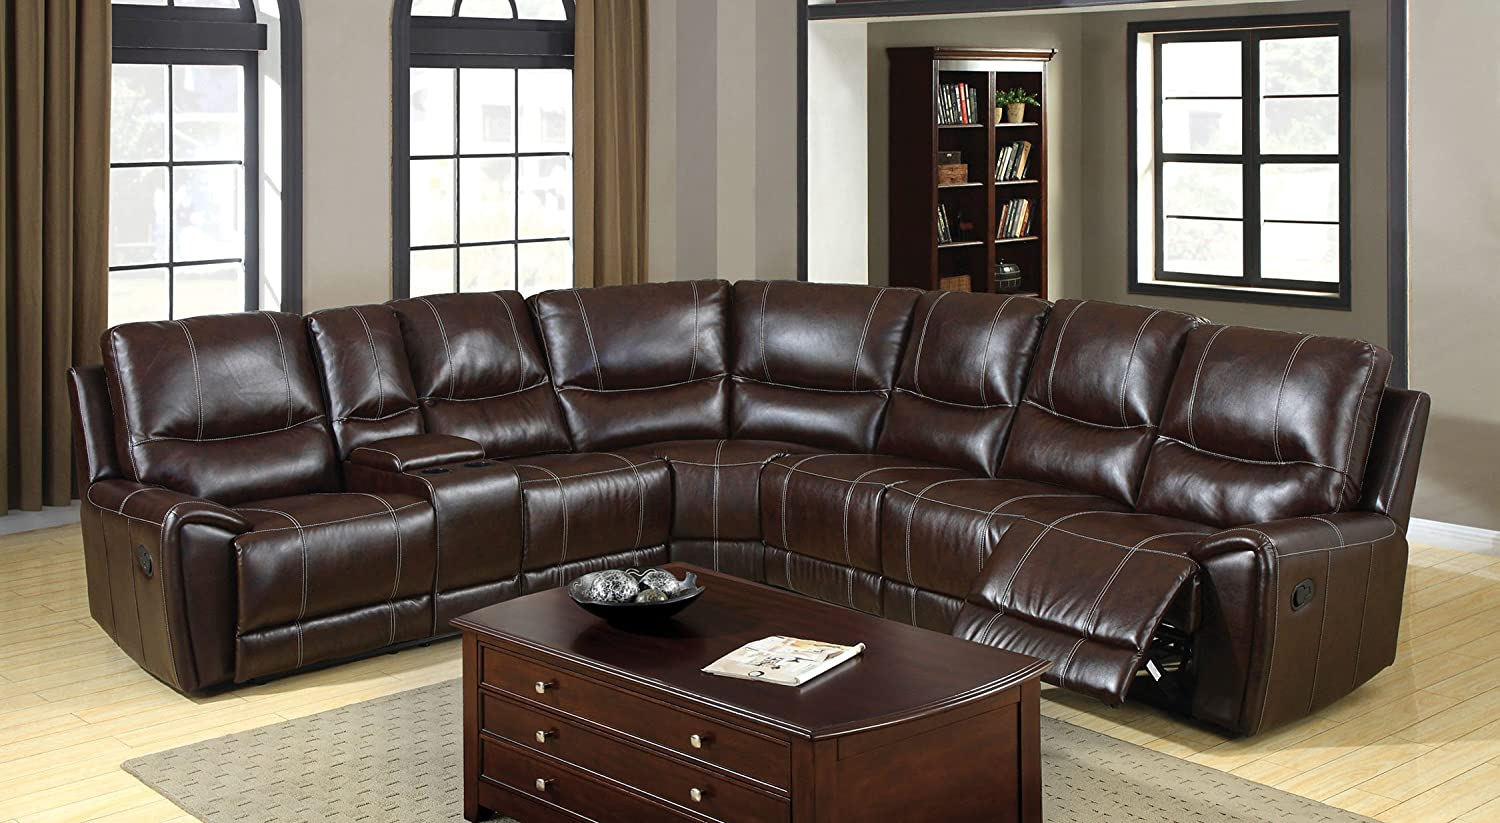 Amazon.com Furniture of America Reeden Bonded Leather Match Sectional Sofa with 3 Recliners Brown Kitchen u0026 Dining & Amazon.com: Furniture of America Reeden Bonded Leather Match ... islam-shia.org